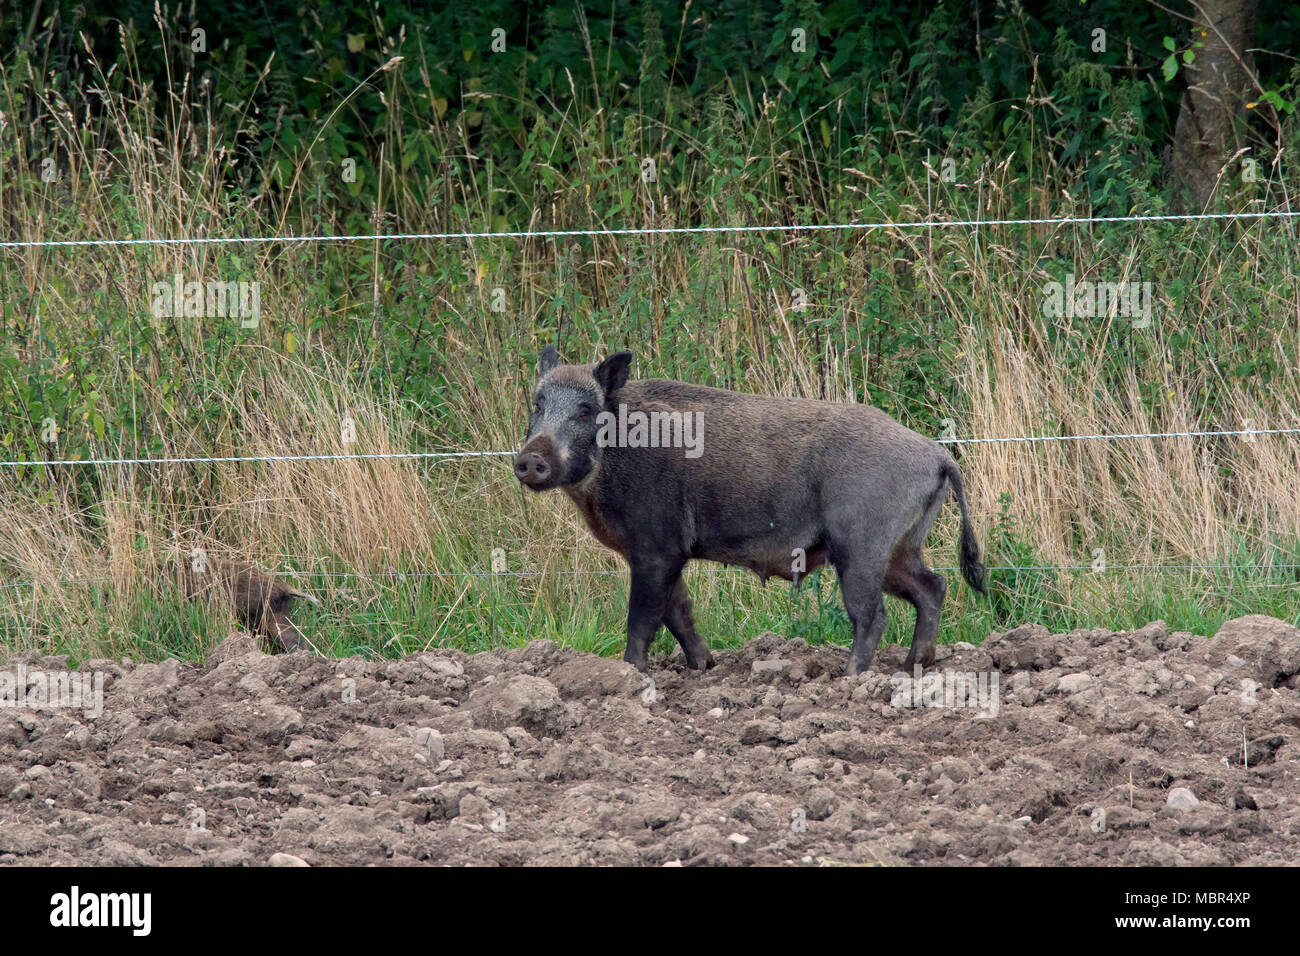 Wild boar (Sus scrofa) sow standing in ploughed field next to electric fence to keep wildlife out Stock Photo